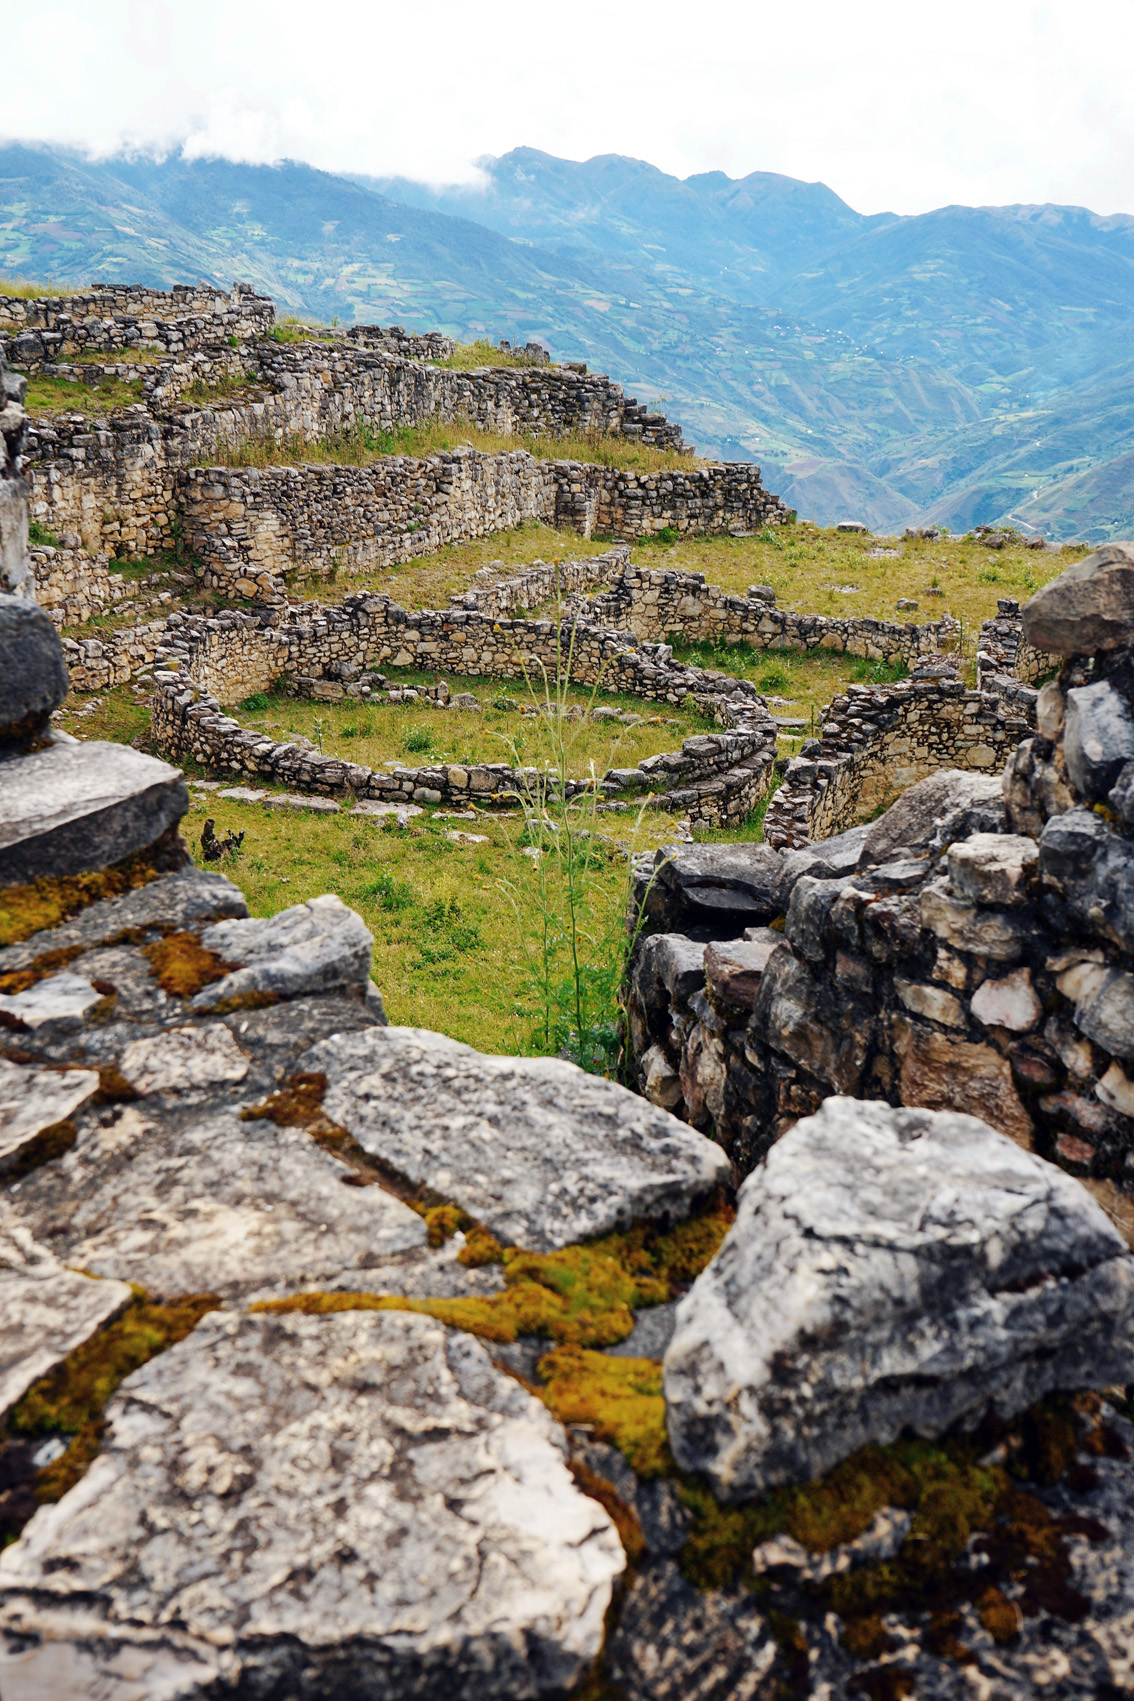 14-1 Lesser known places in Peru: Chachapoyas - a natural paradise to discover.